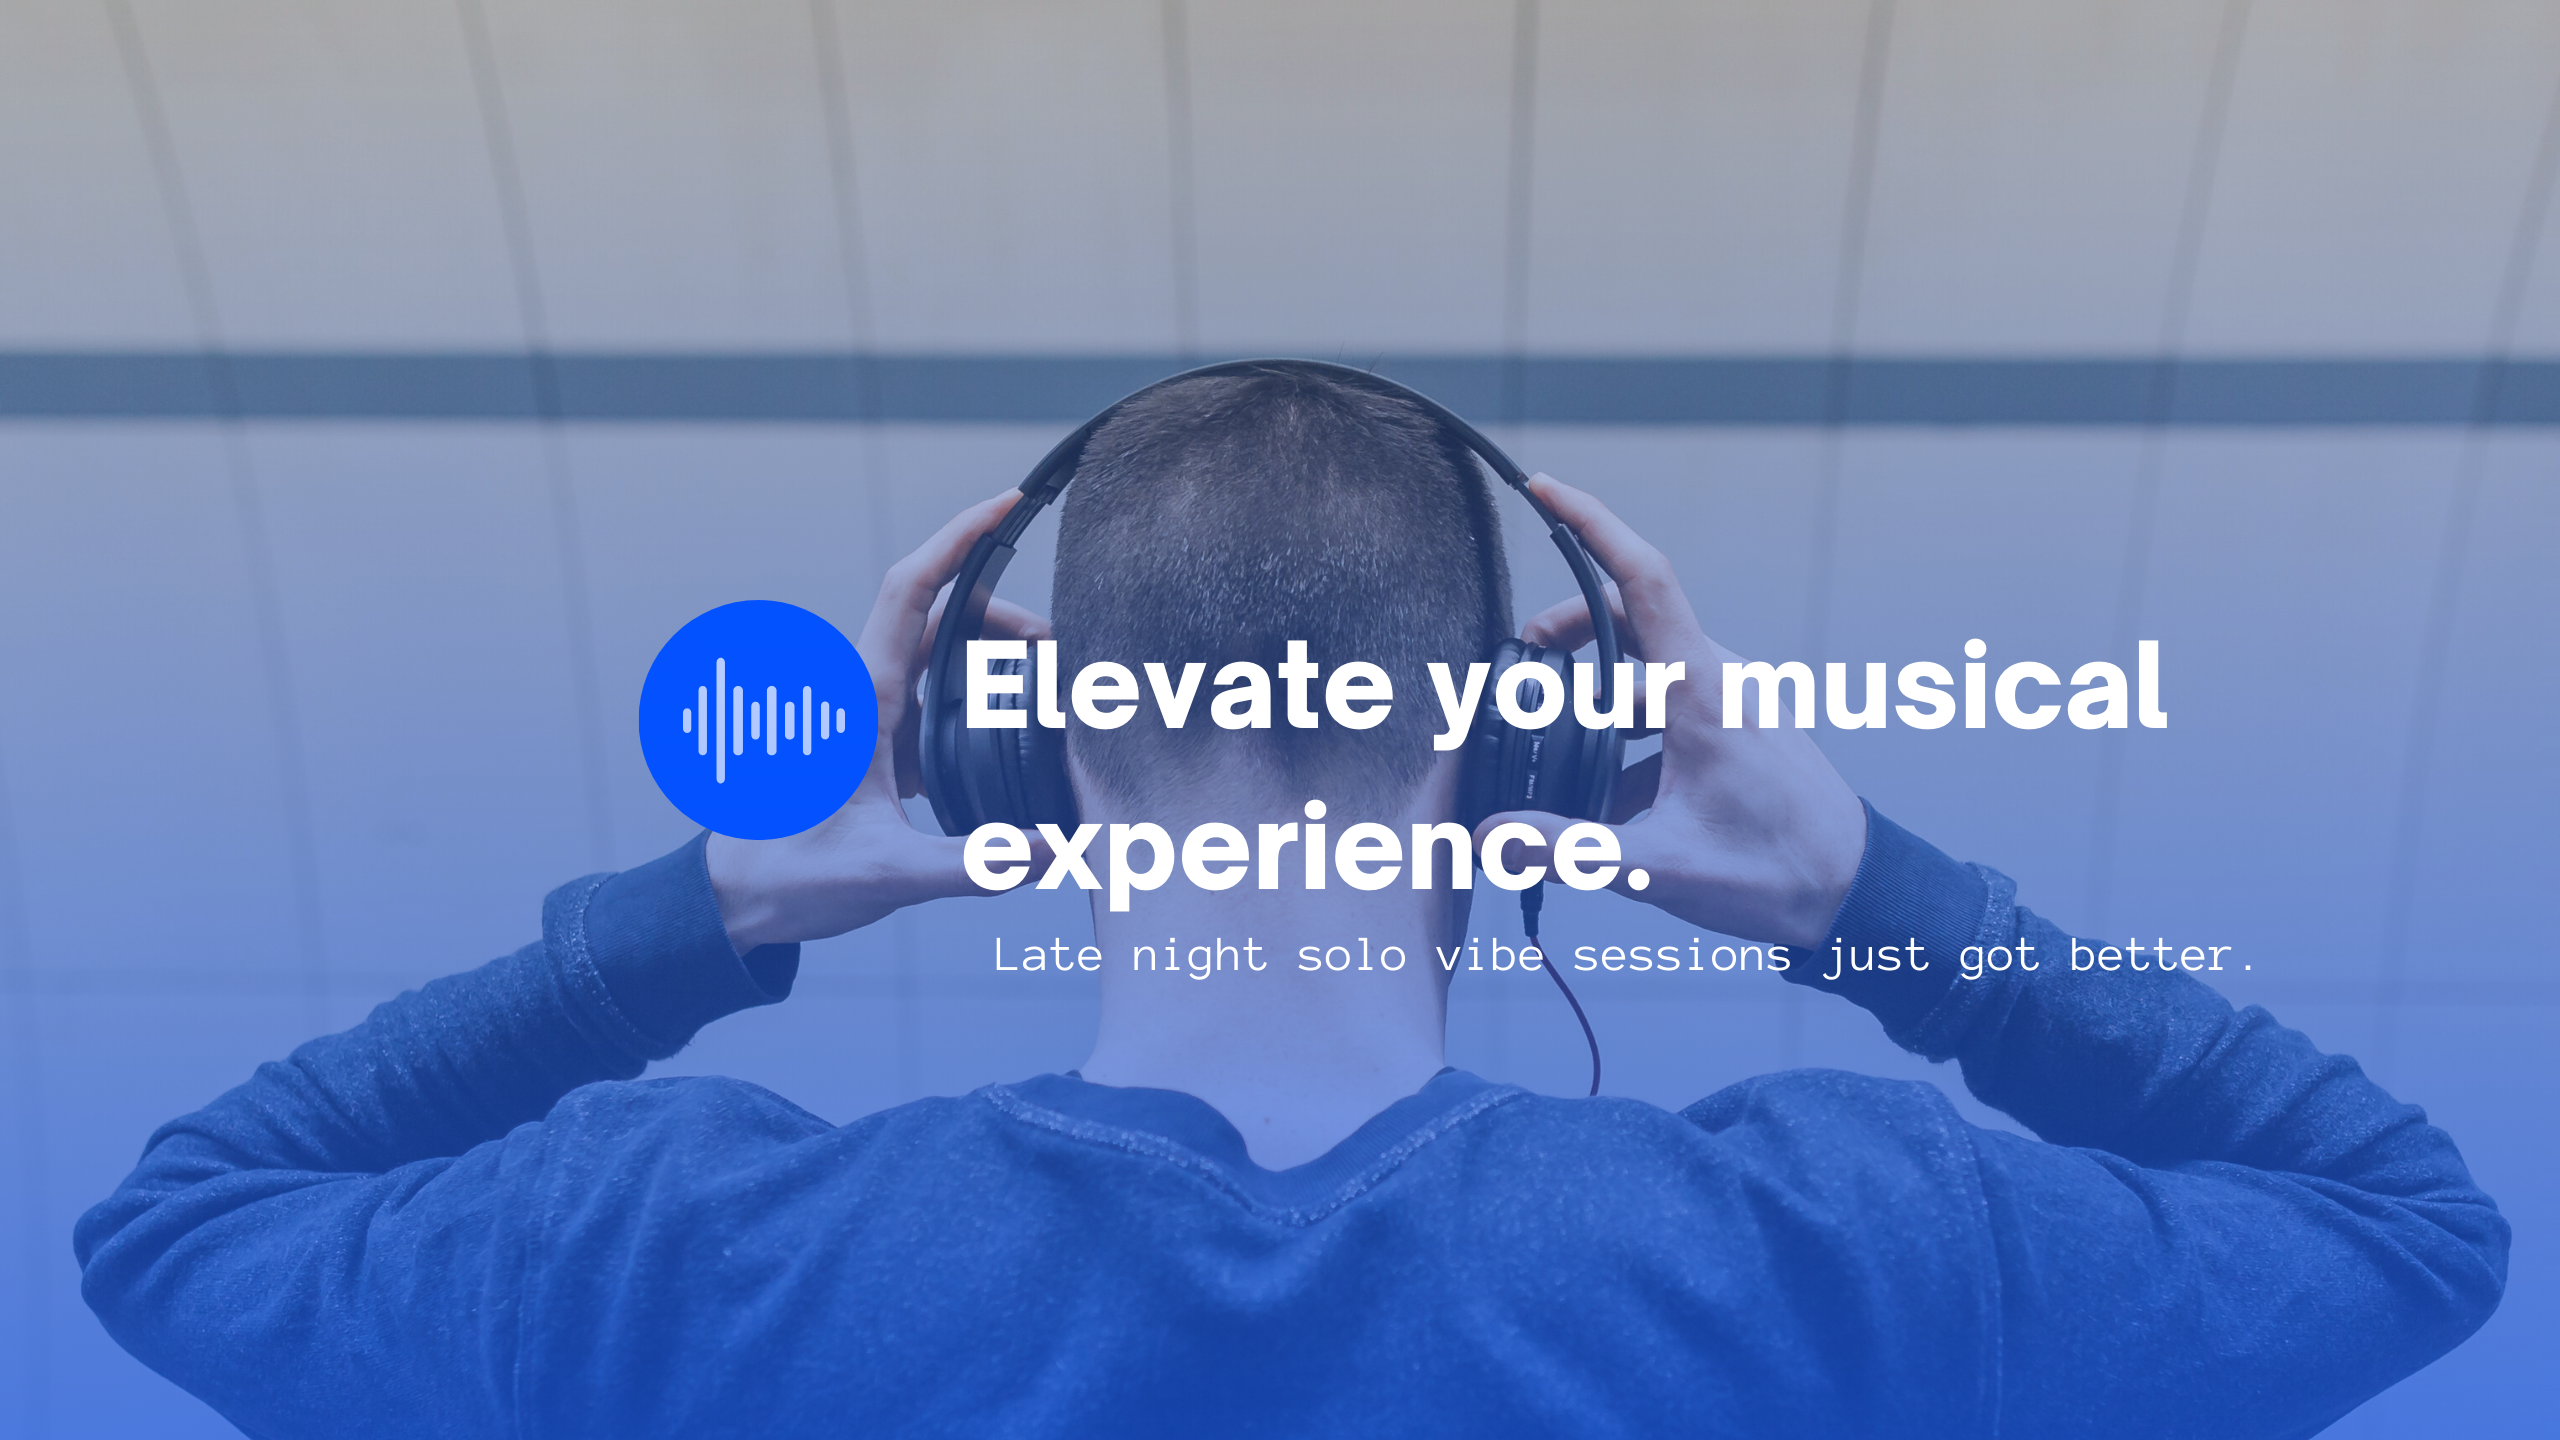 Enhance solo vibe sessions with SYQEL: The music visualizer.